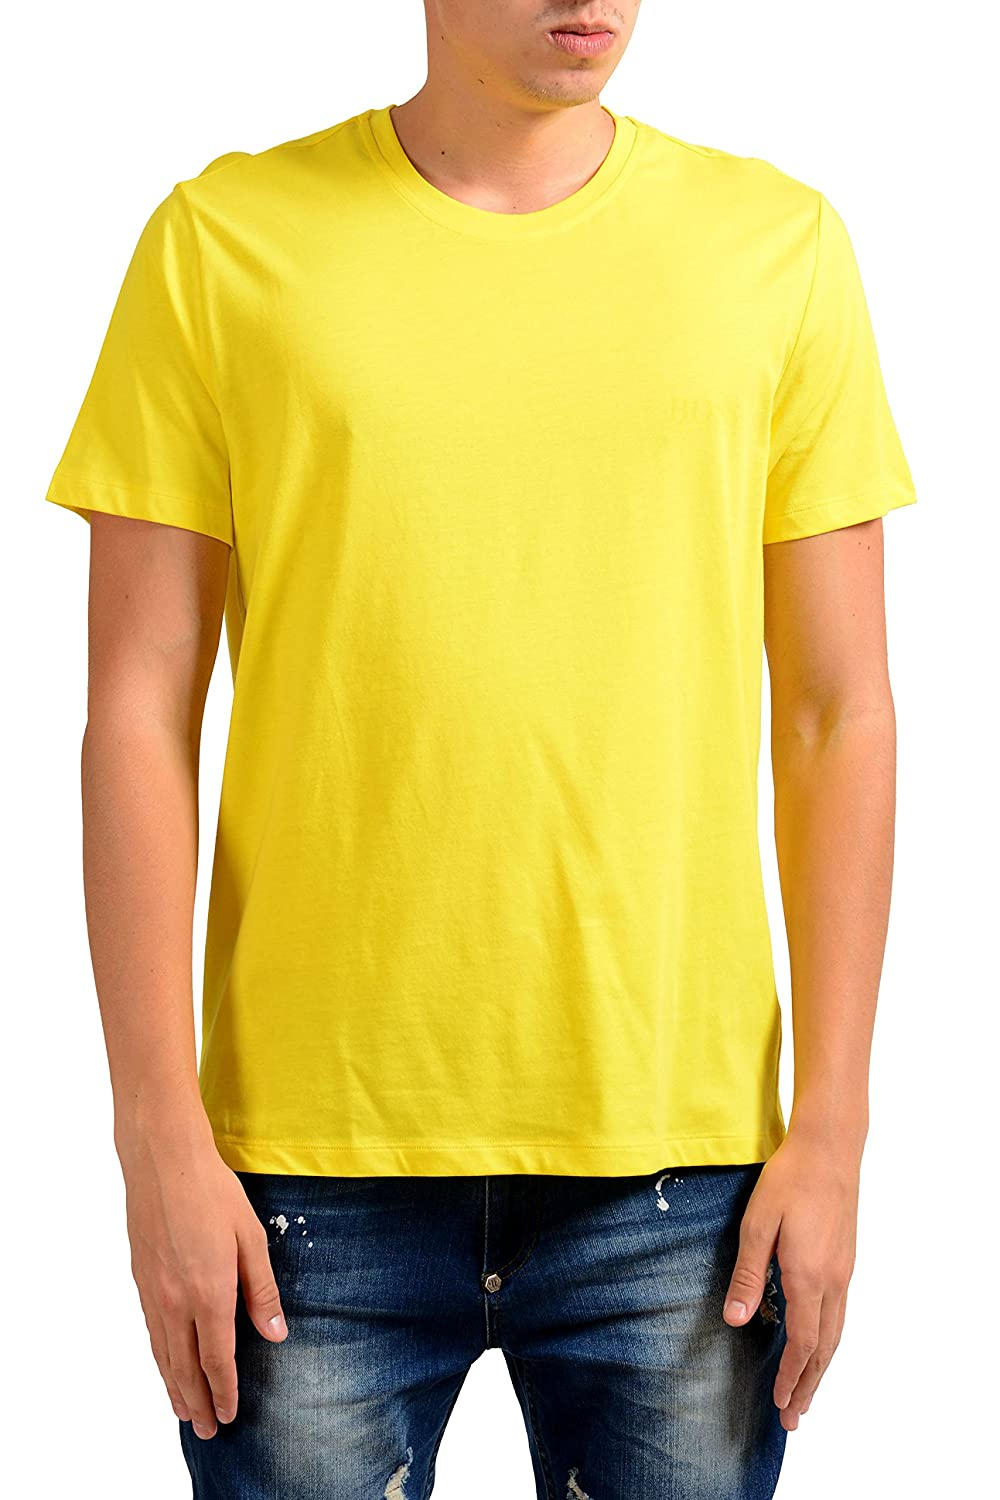 Hugo Boss T-ShirtRN24 Mens Yellow Crewneck T-Shirt US M IT 50